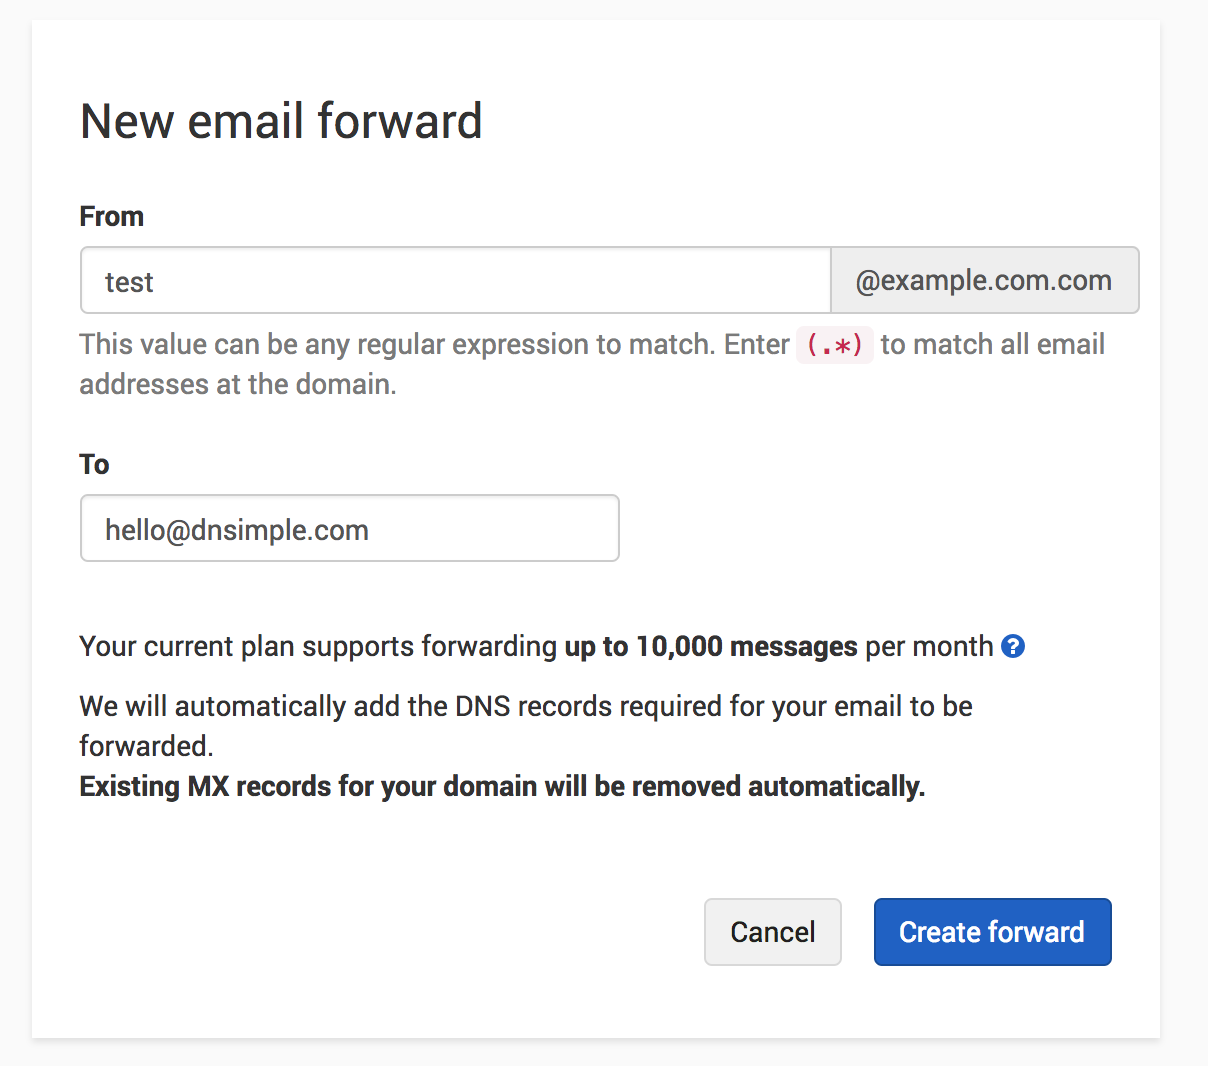 Email forwarding creation